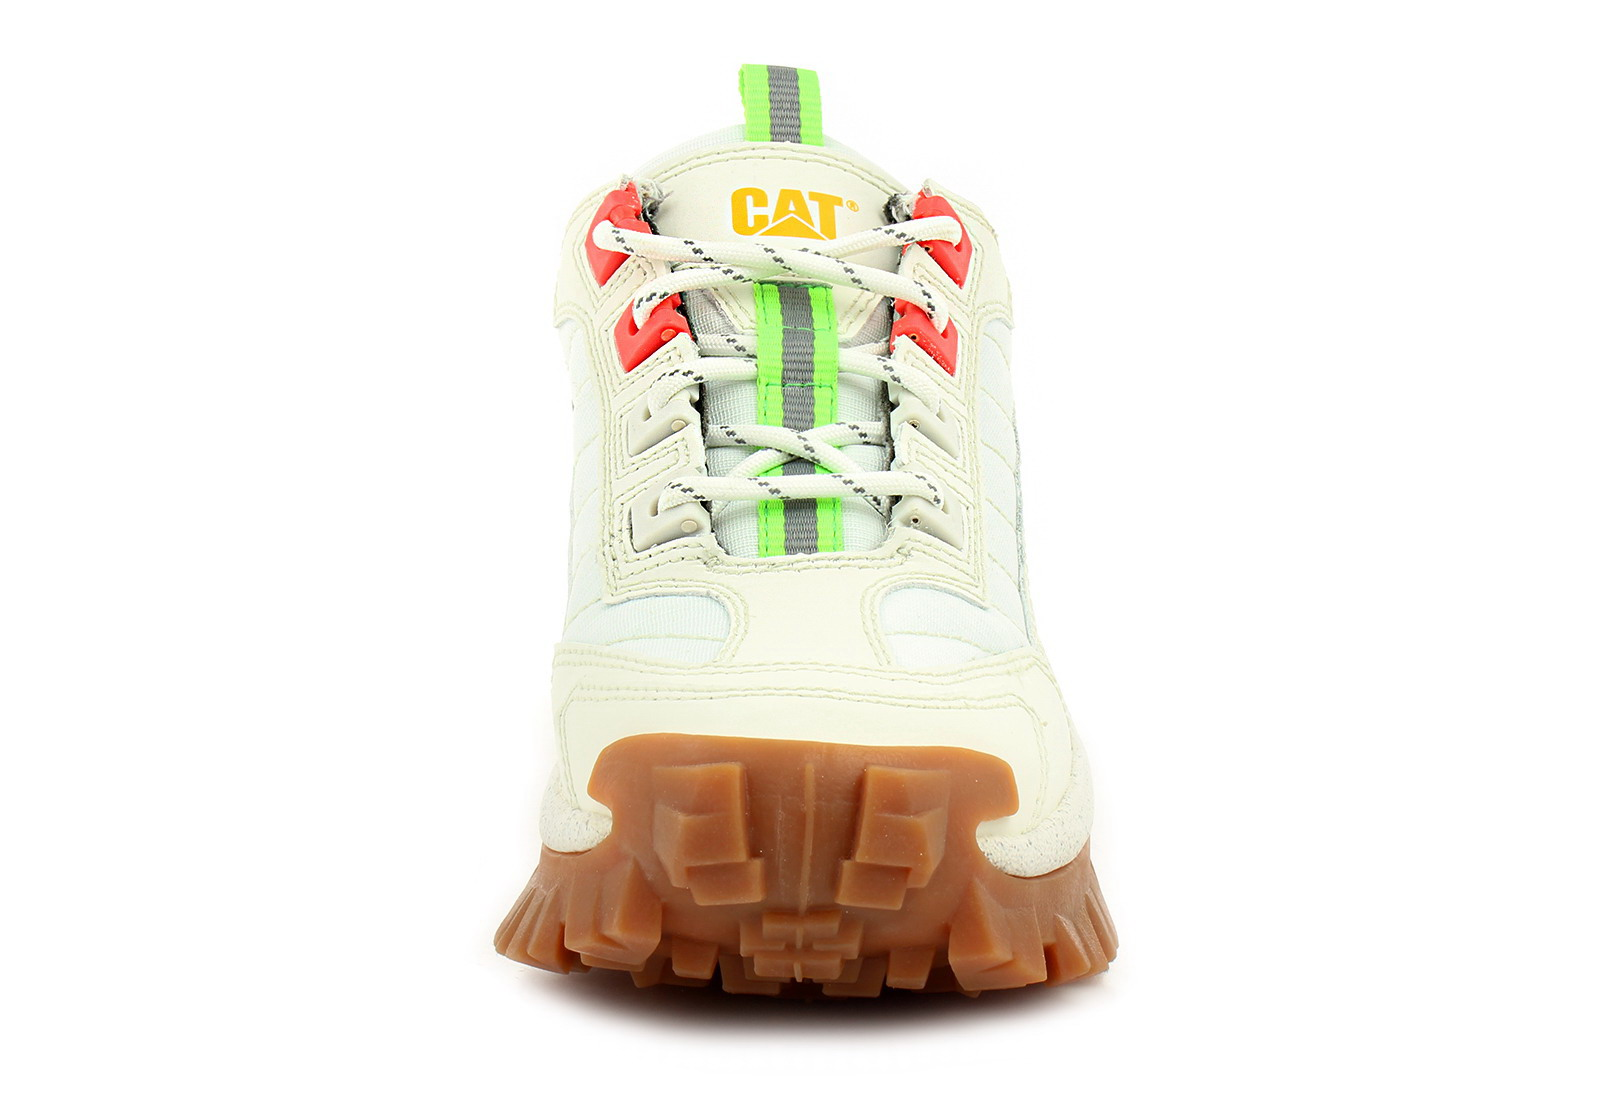 Cat Shoes Intruder 723311 Wht Online Shop For